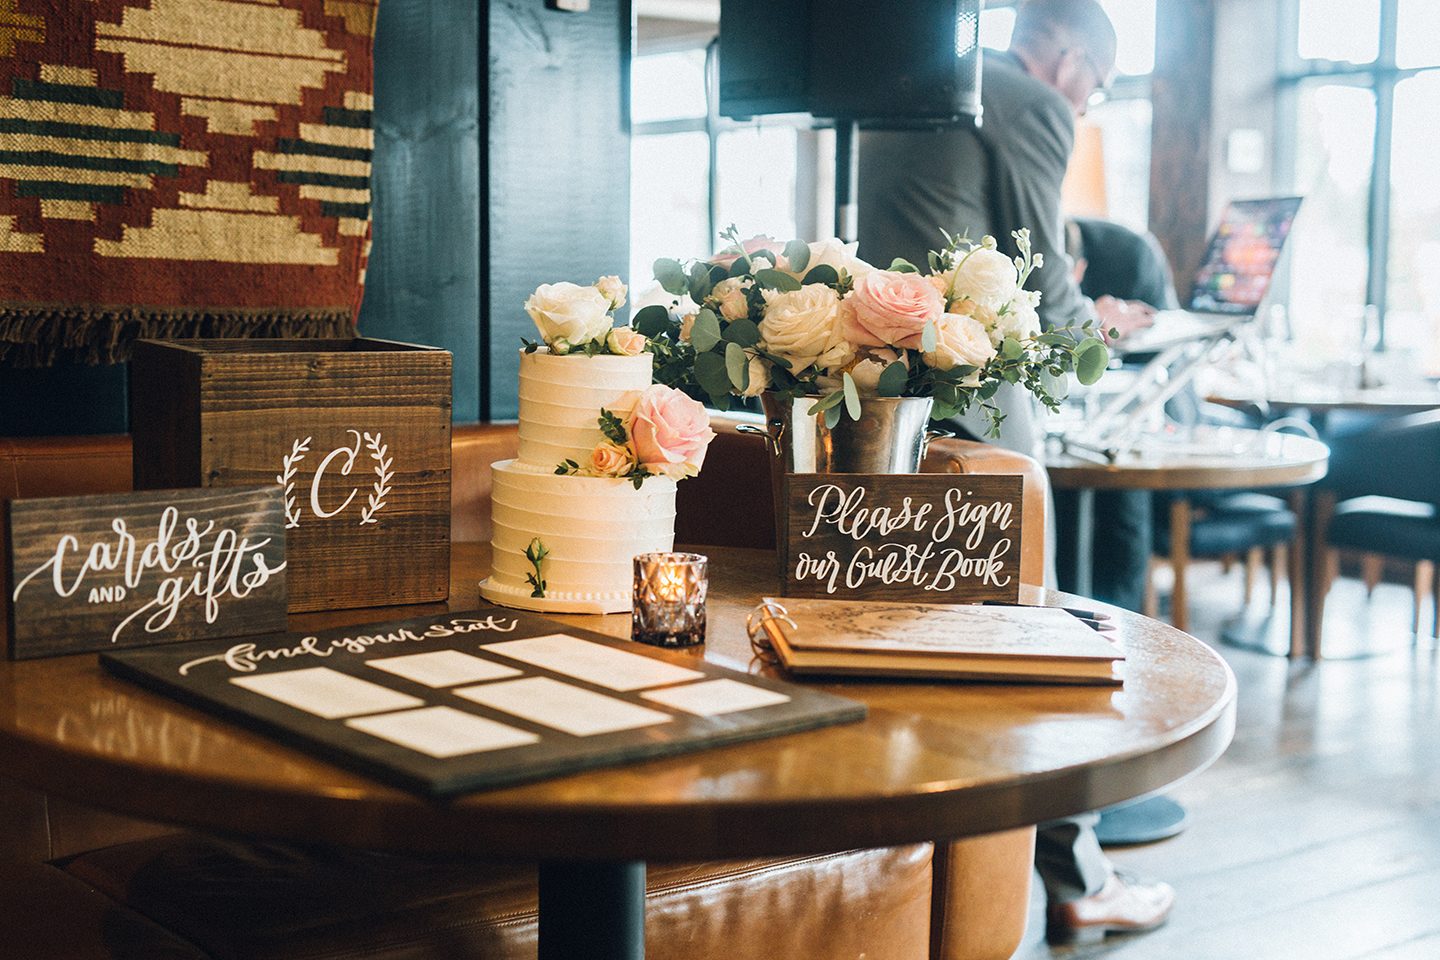 Gift & cake table